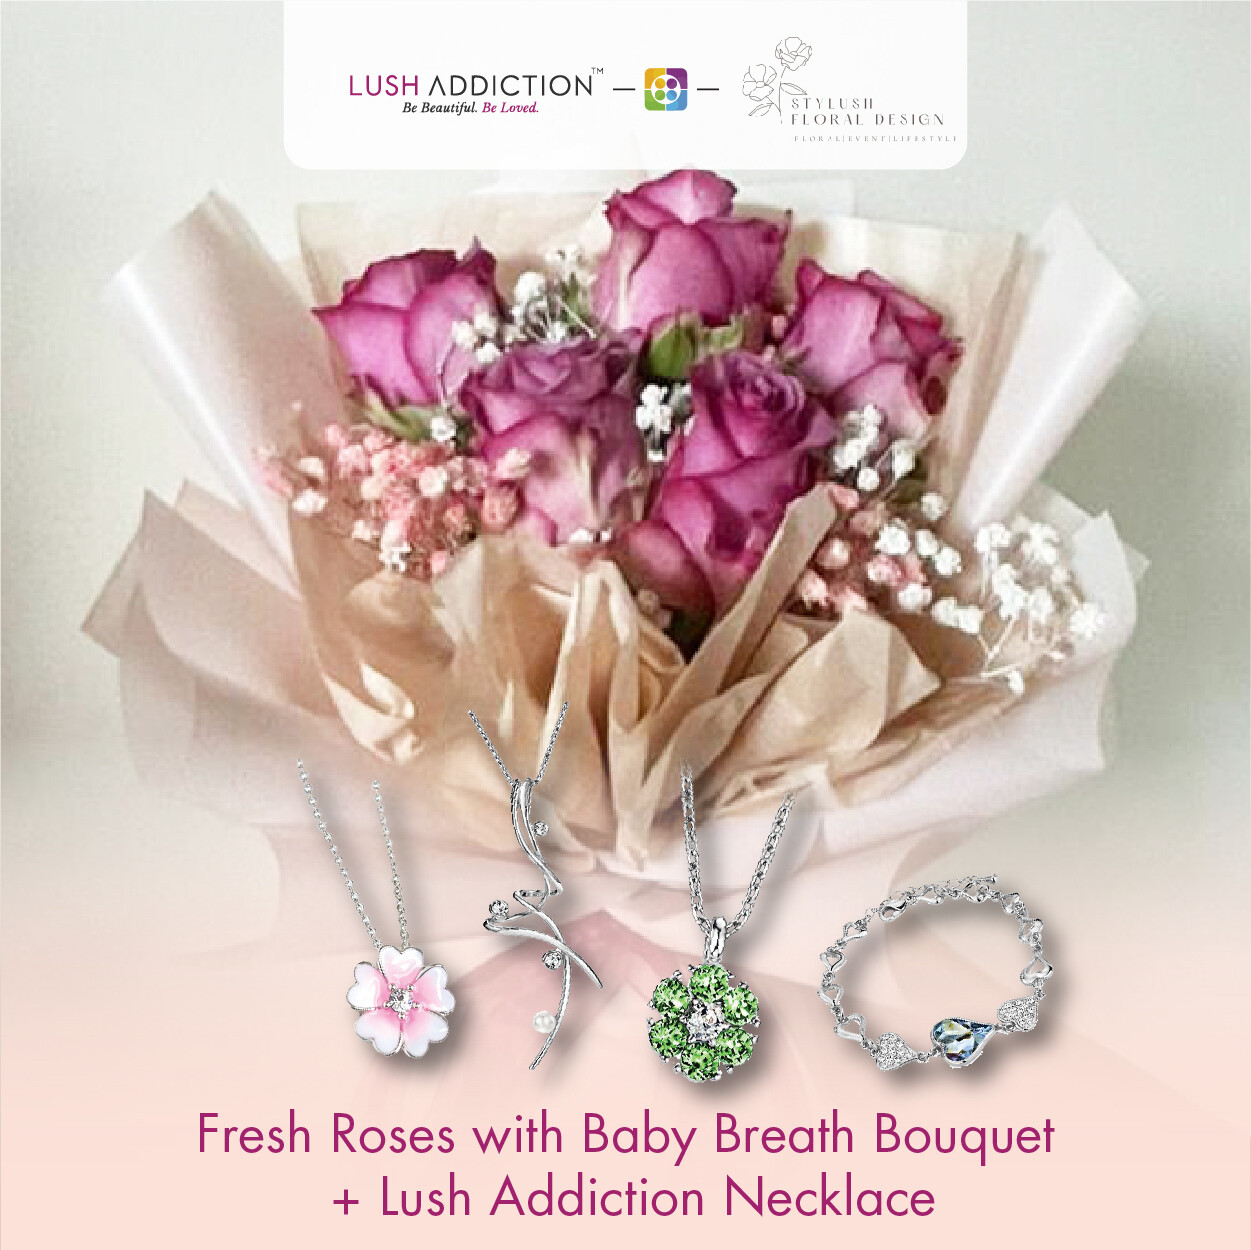 Fresh Roses With Baby Breath Bouquet + Lush Addiction Necklace (By: Stylush Studio Floral Design from Kota Kinabalu)